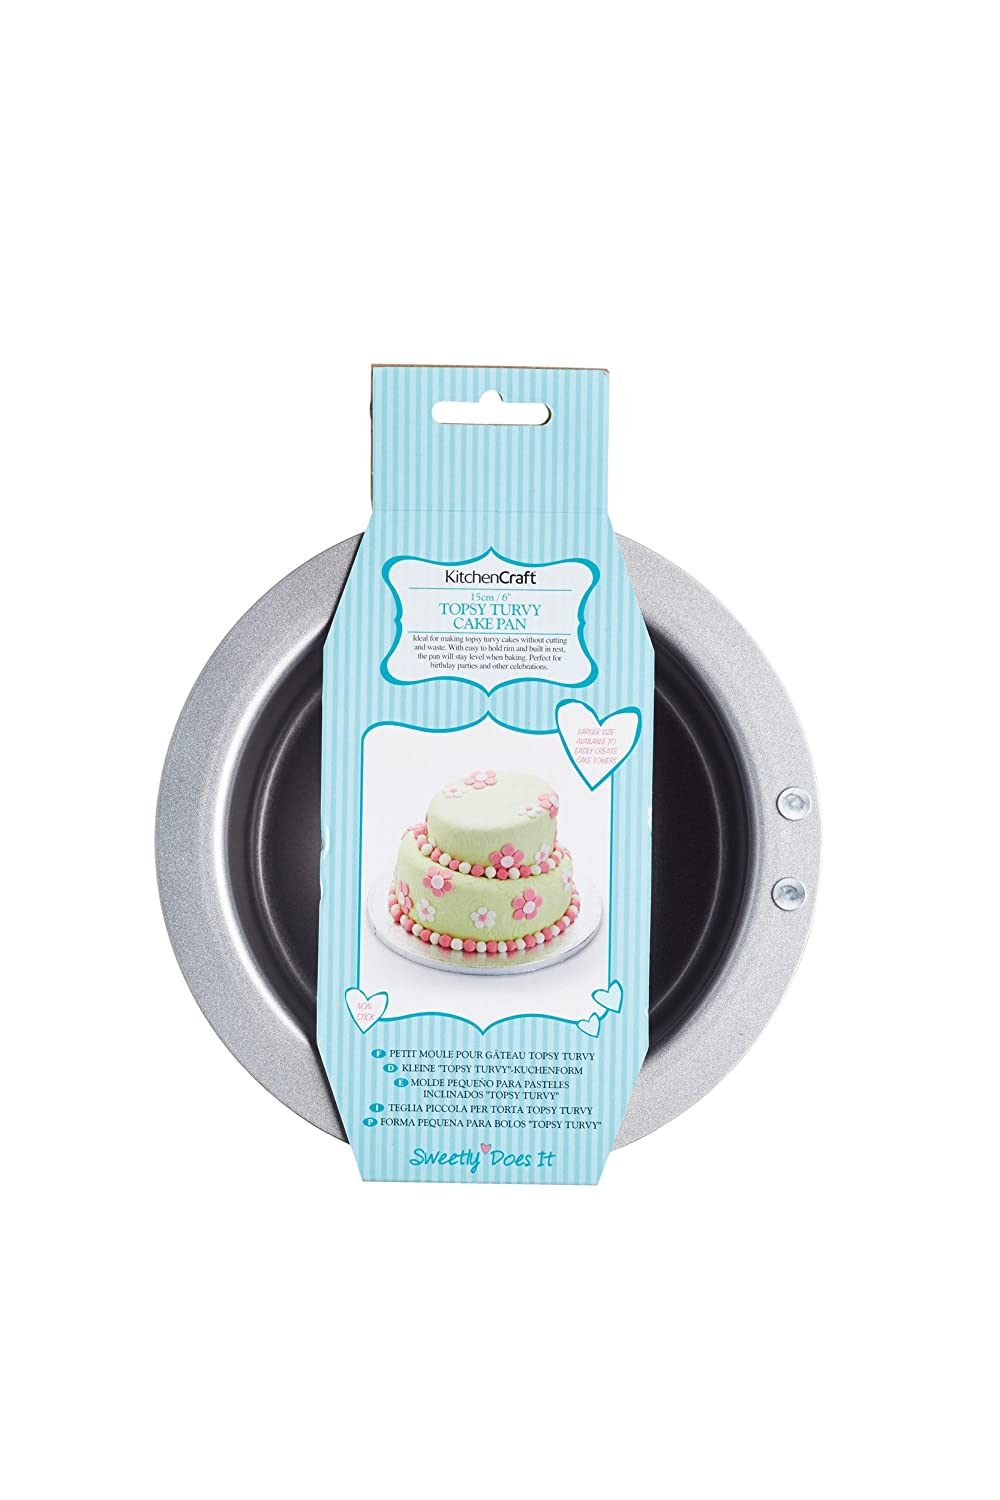 Kitchen Craft - 15 cm Sweetly Does It - Molde Antiadherente de Acero al Carbono EuroTins - Paleta para Tartas, Color Plateado: Amazon.es: Hogar